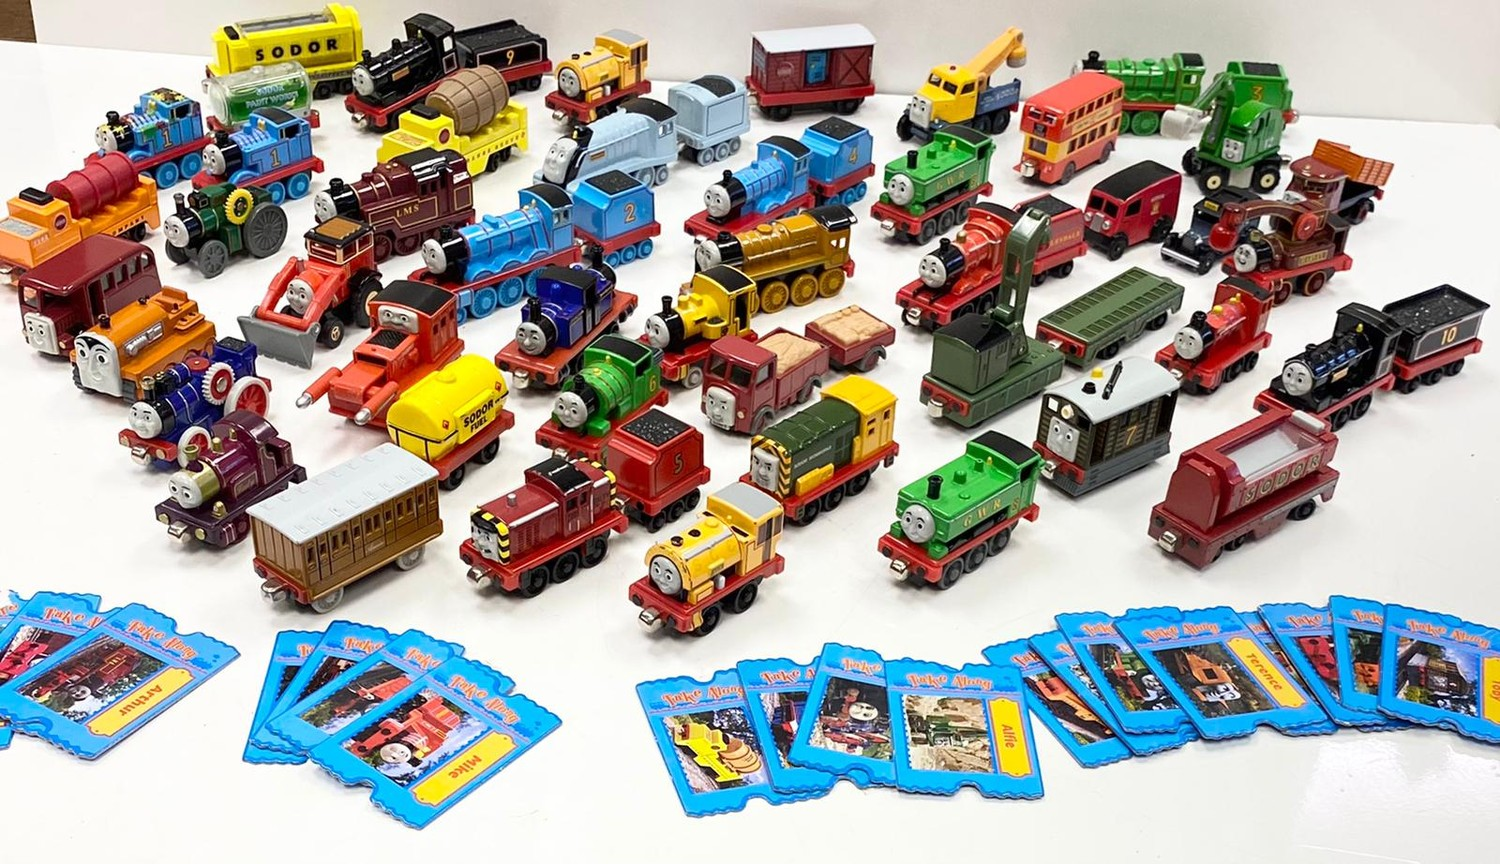 Collection of Thomas & Friends, Take-Along Die Cast toys. Total of 45 models including Mighty Mac